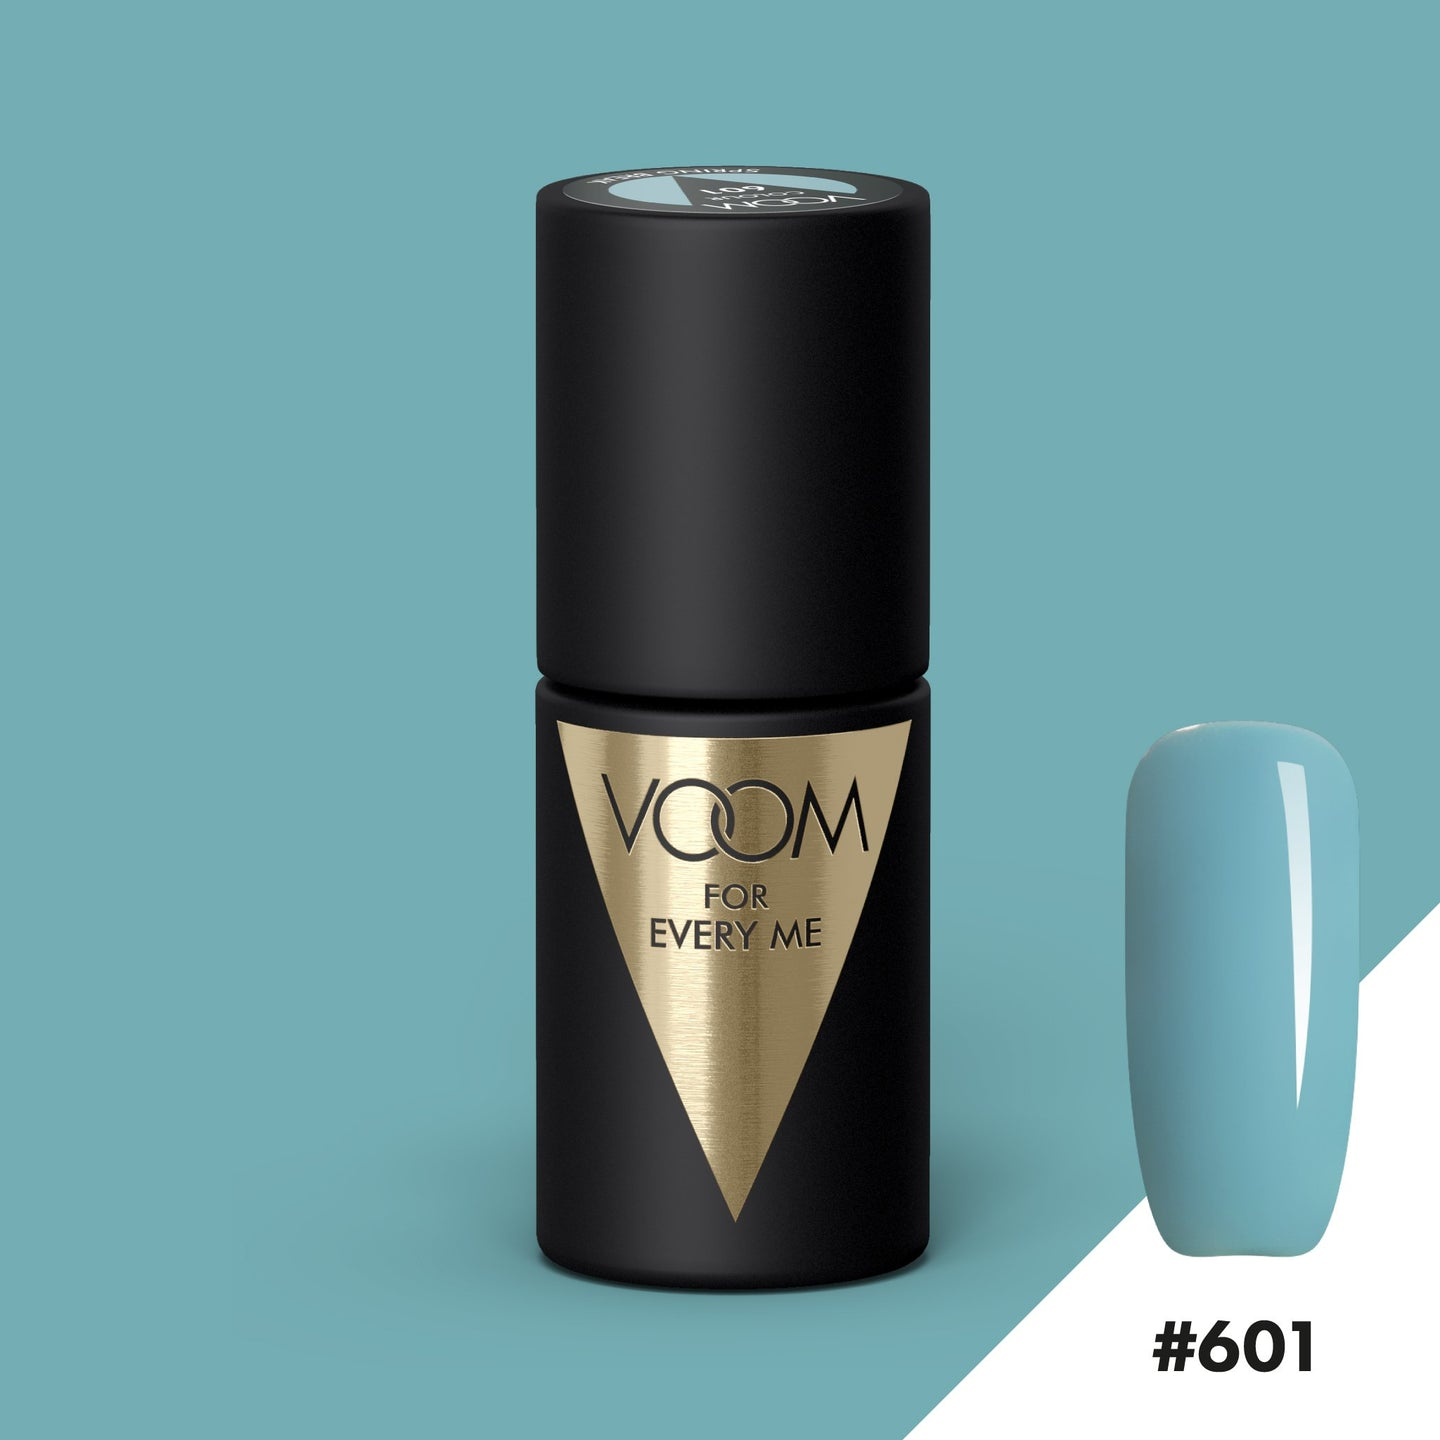 VOOM Soak Off Gel Polish #601 - Spring Break (.17 fl. oz. | 5 ml)